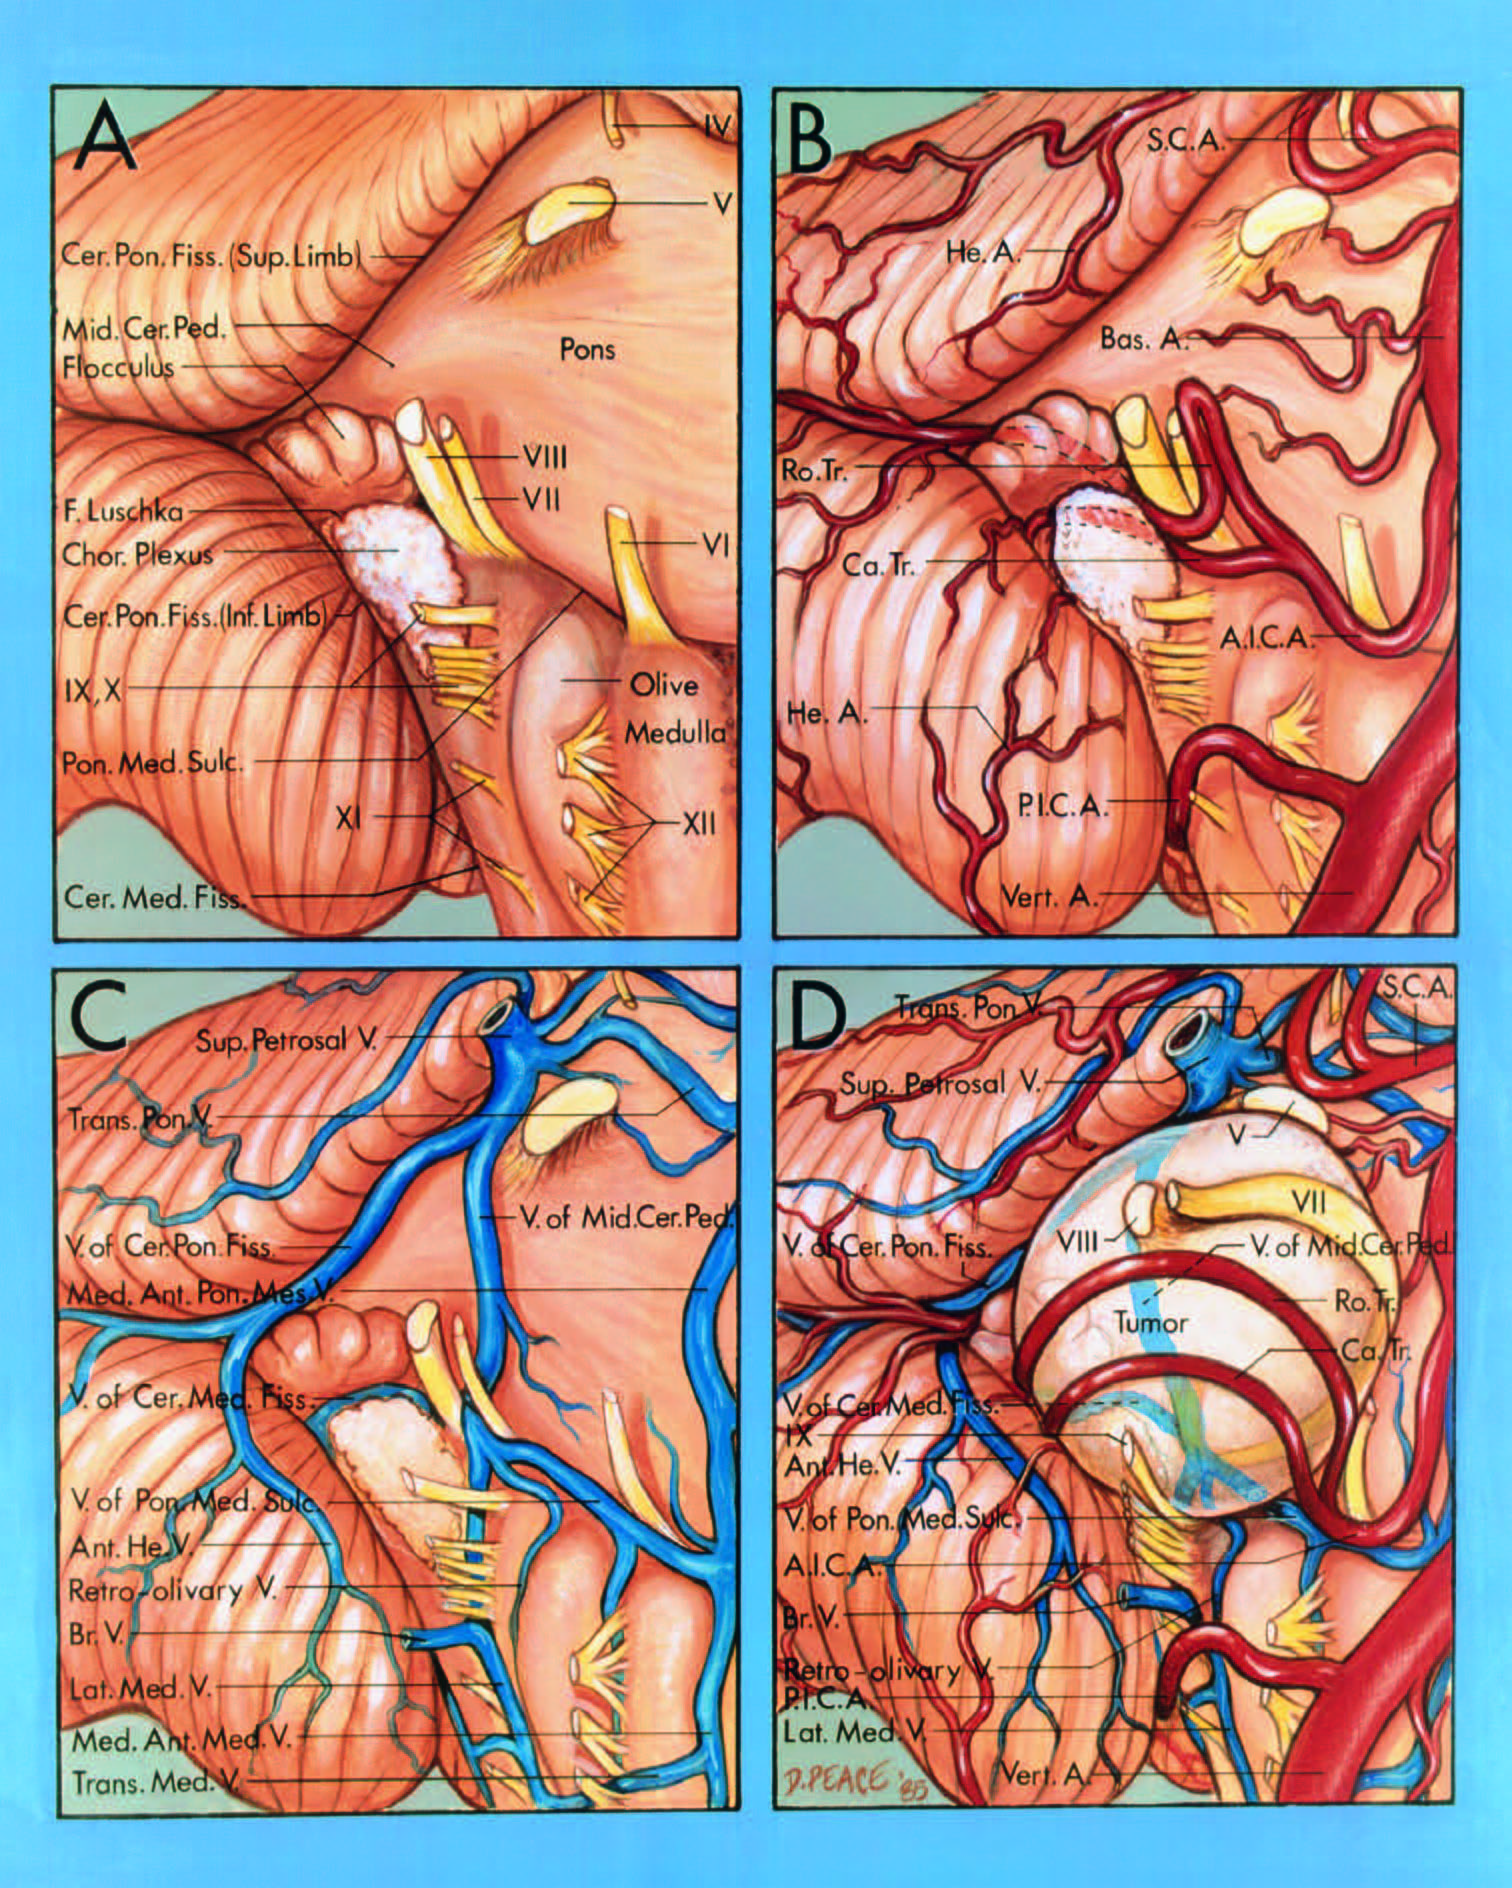 FIGURE 4.20. Neurovascular relationships on the brainstem side of an acoustic neuroma. Anterolateral view of the